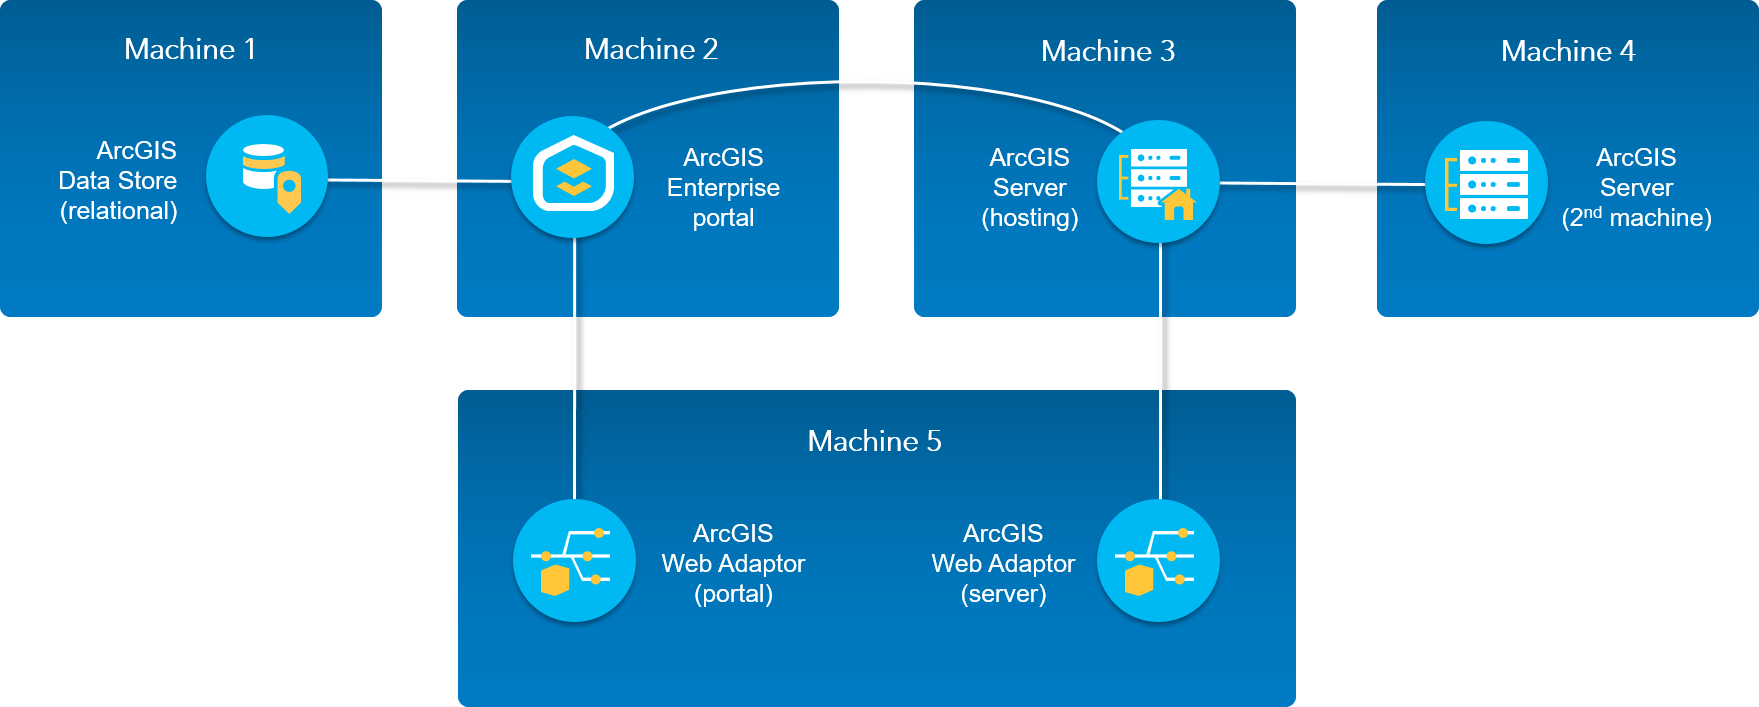 Create a base ArcGIS Enterprise deployment on many machines